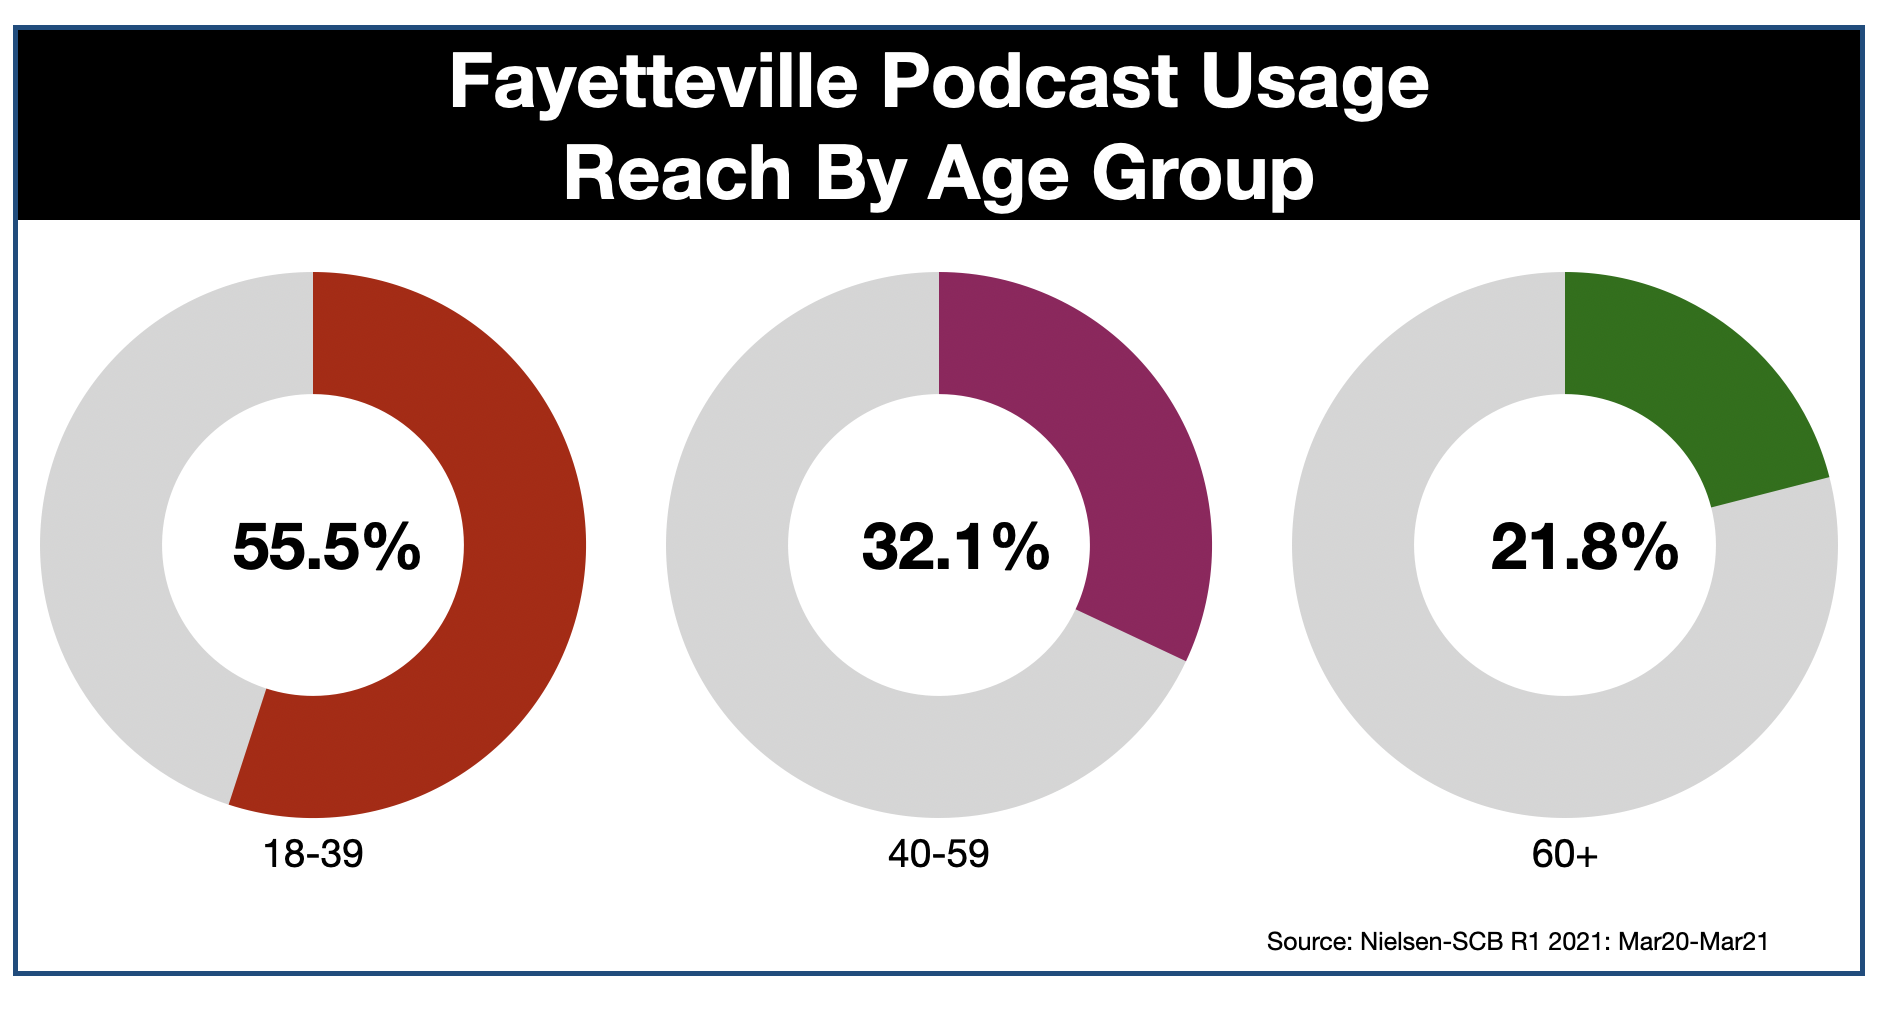 Podcast Advertising In Fayetteville AGE